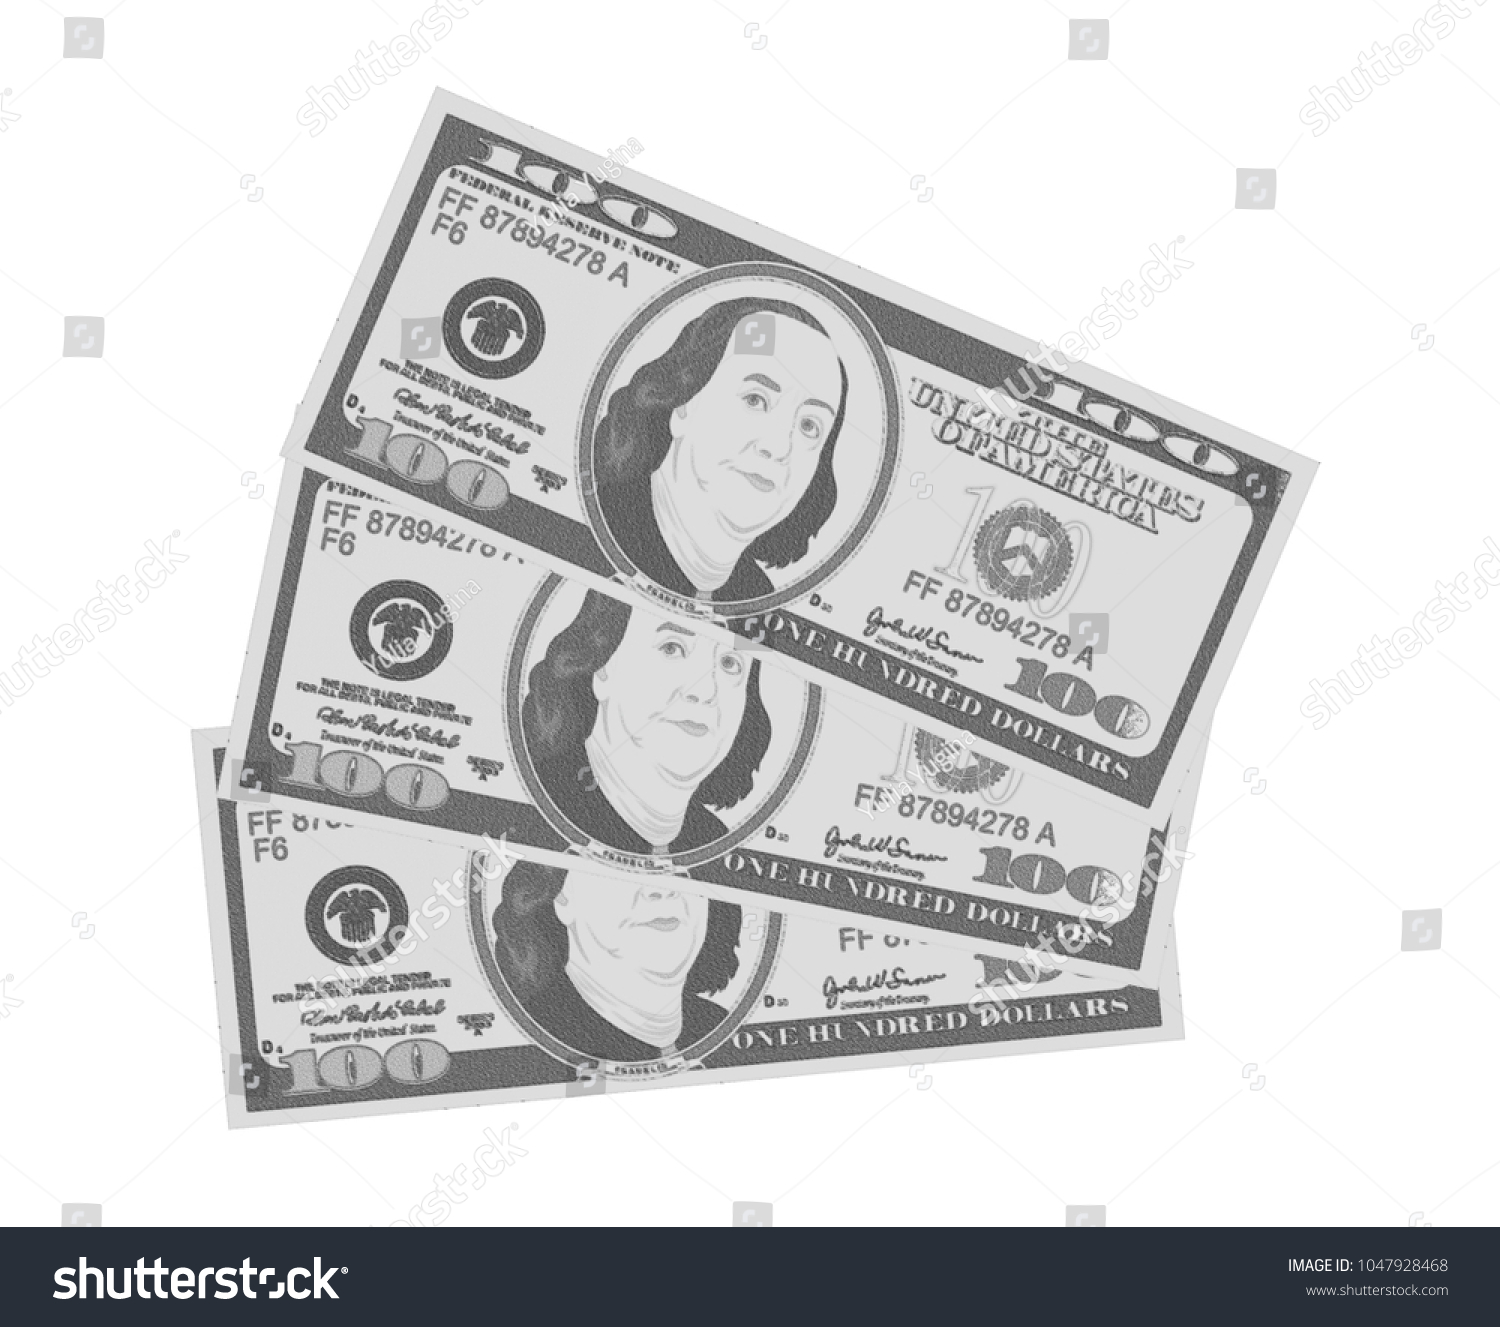 Magnificent Hundred Dollar Bill Template Pattern - Examples ...